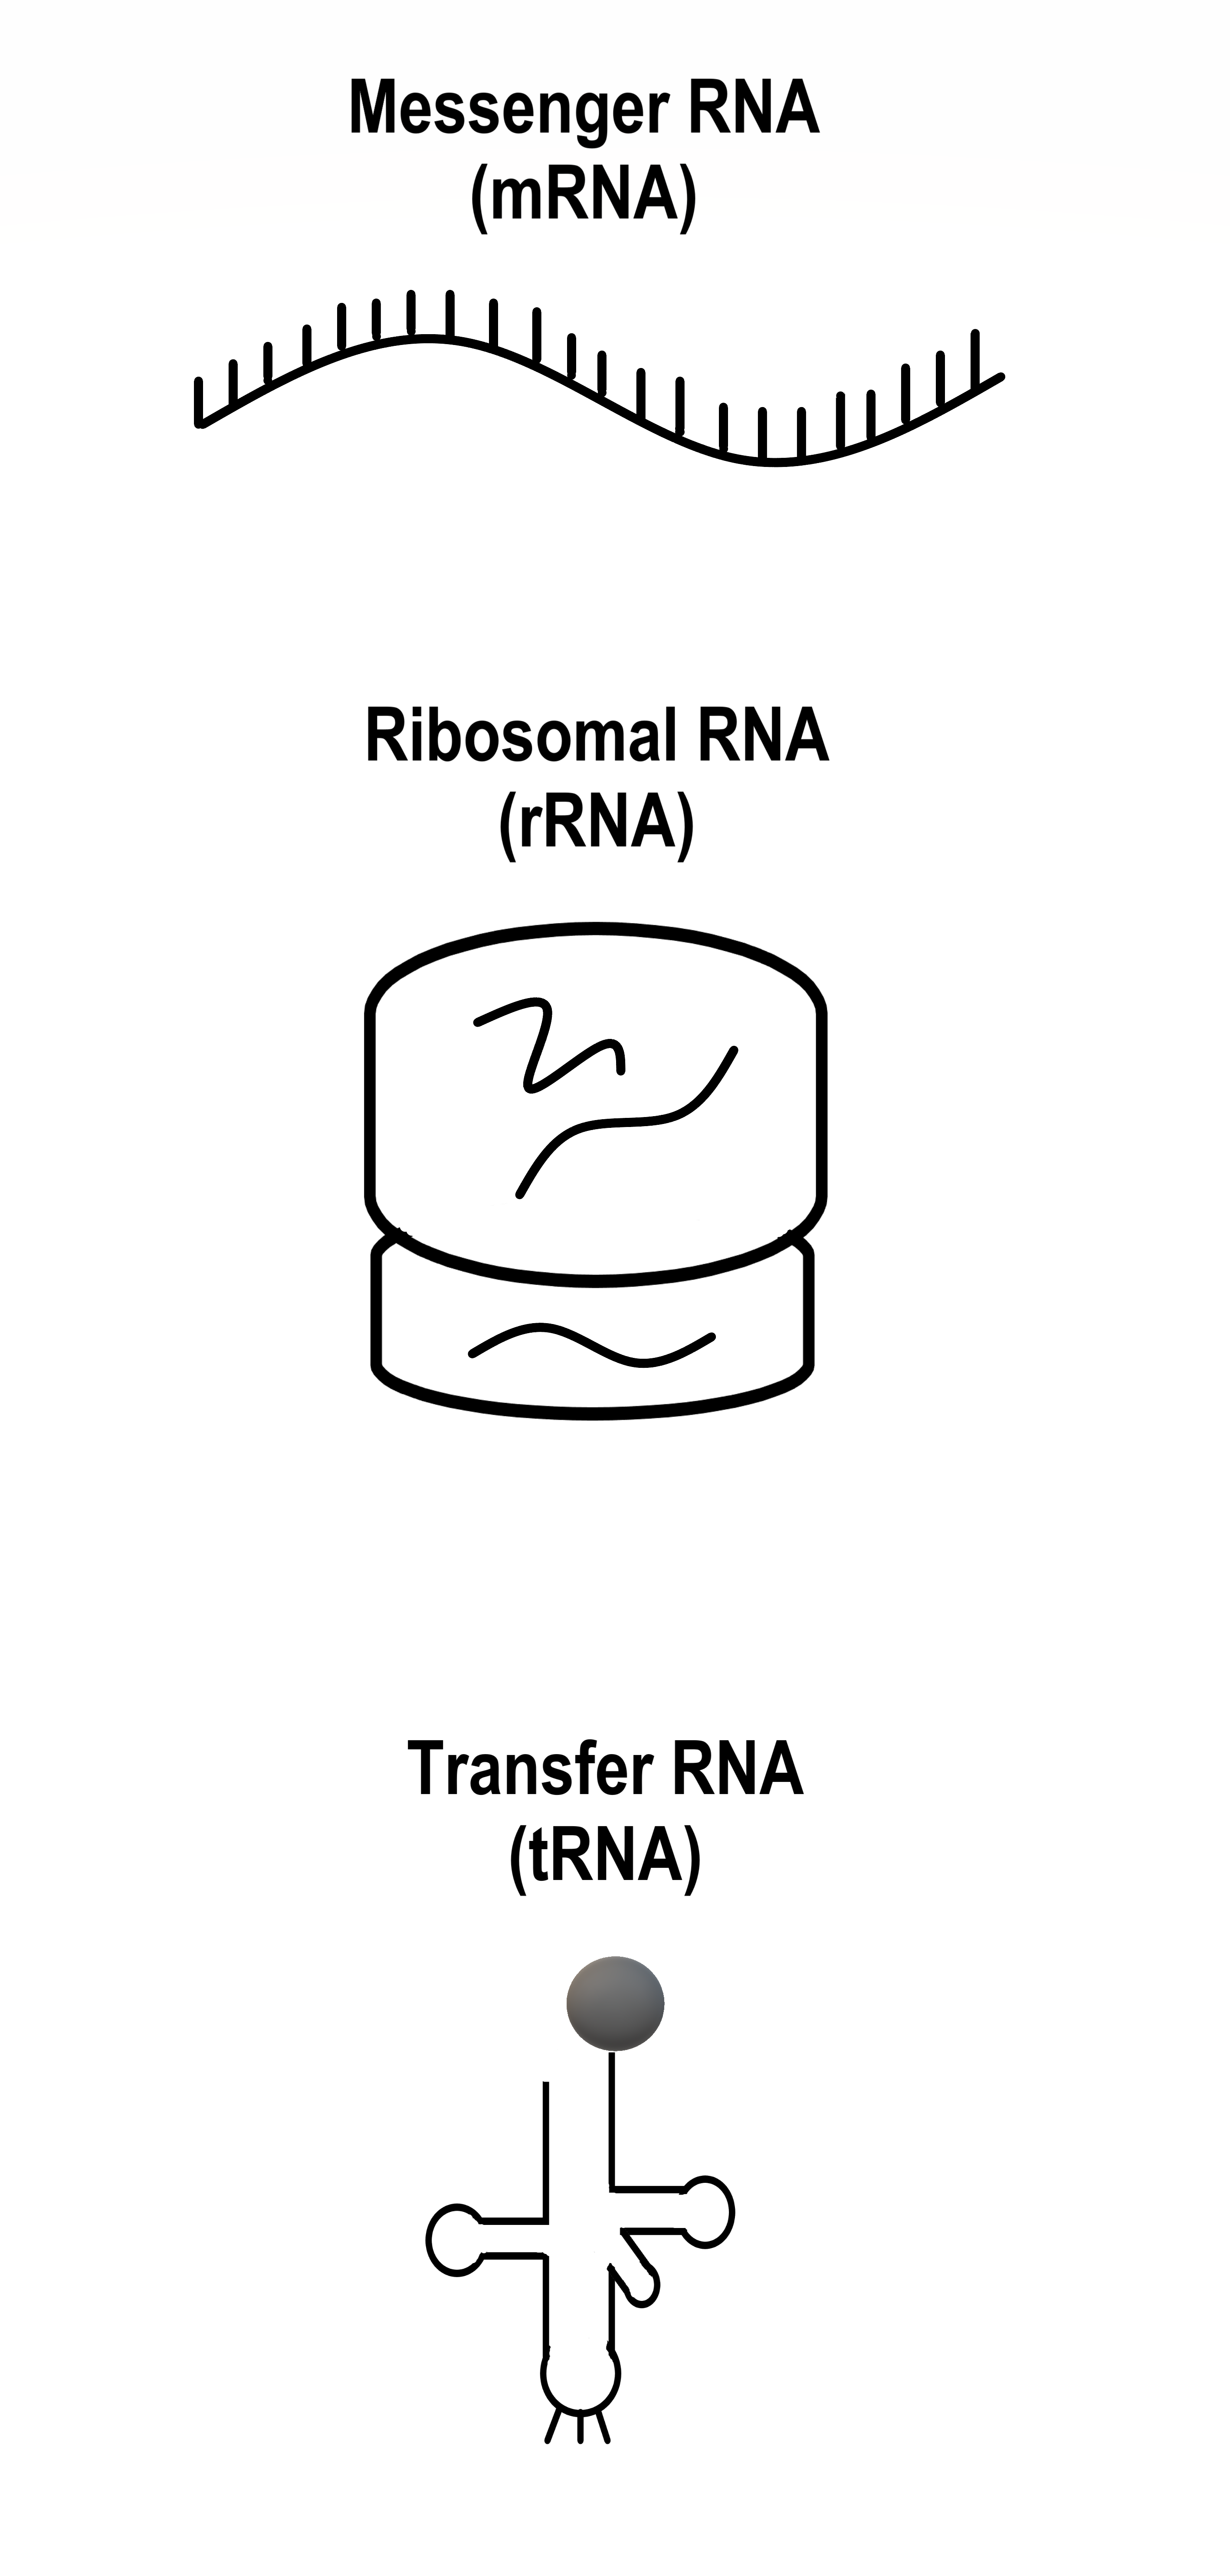 Image shows a diagram of the three types of RNA: Messenger RNA, which is a single strand of RNA, Ribosomal RNA, which is an RNA-protein complex with two subunits, and transfer RNA, which is a single strand of RNA enfolded on itself with an anticodon region and a region which can carry a single amino acid.